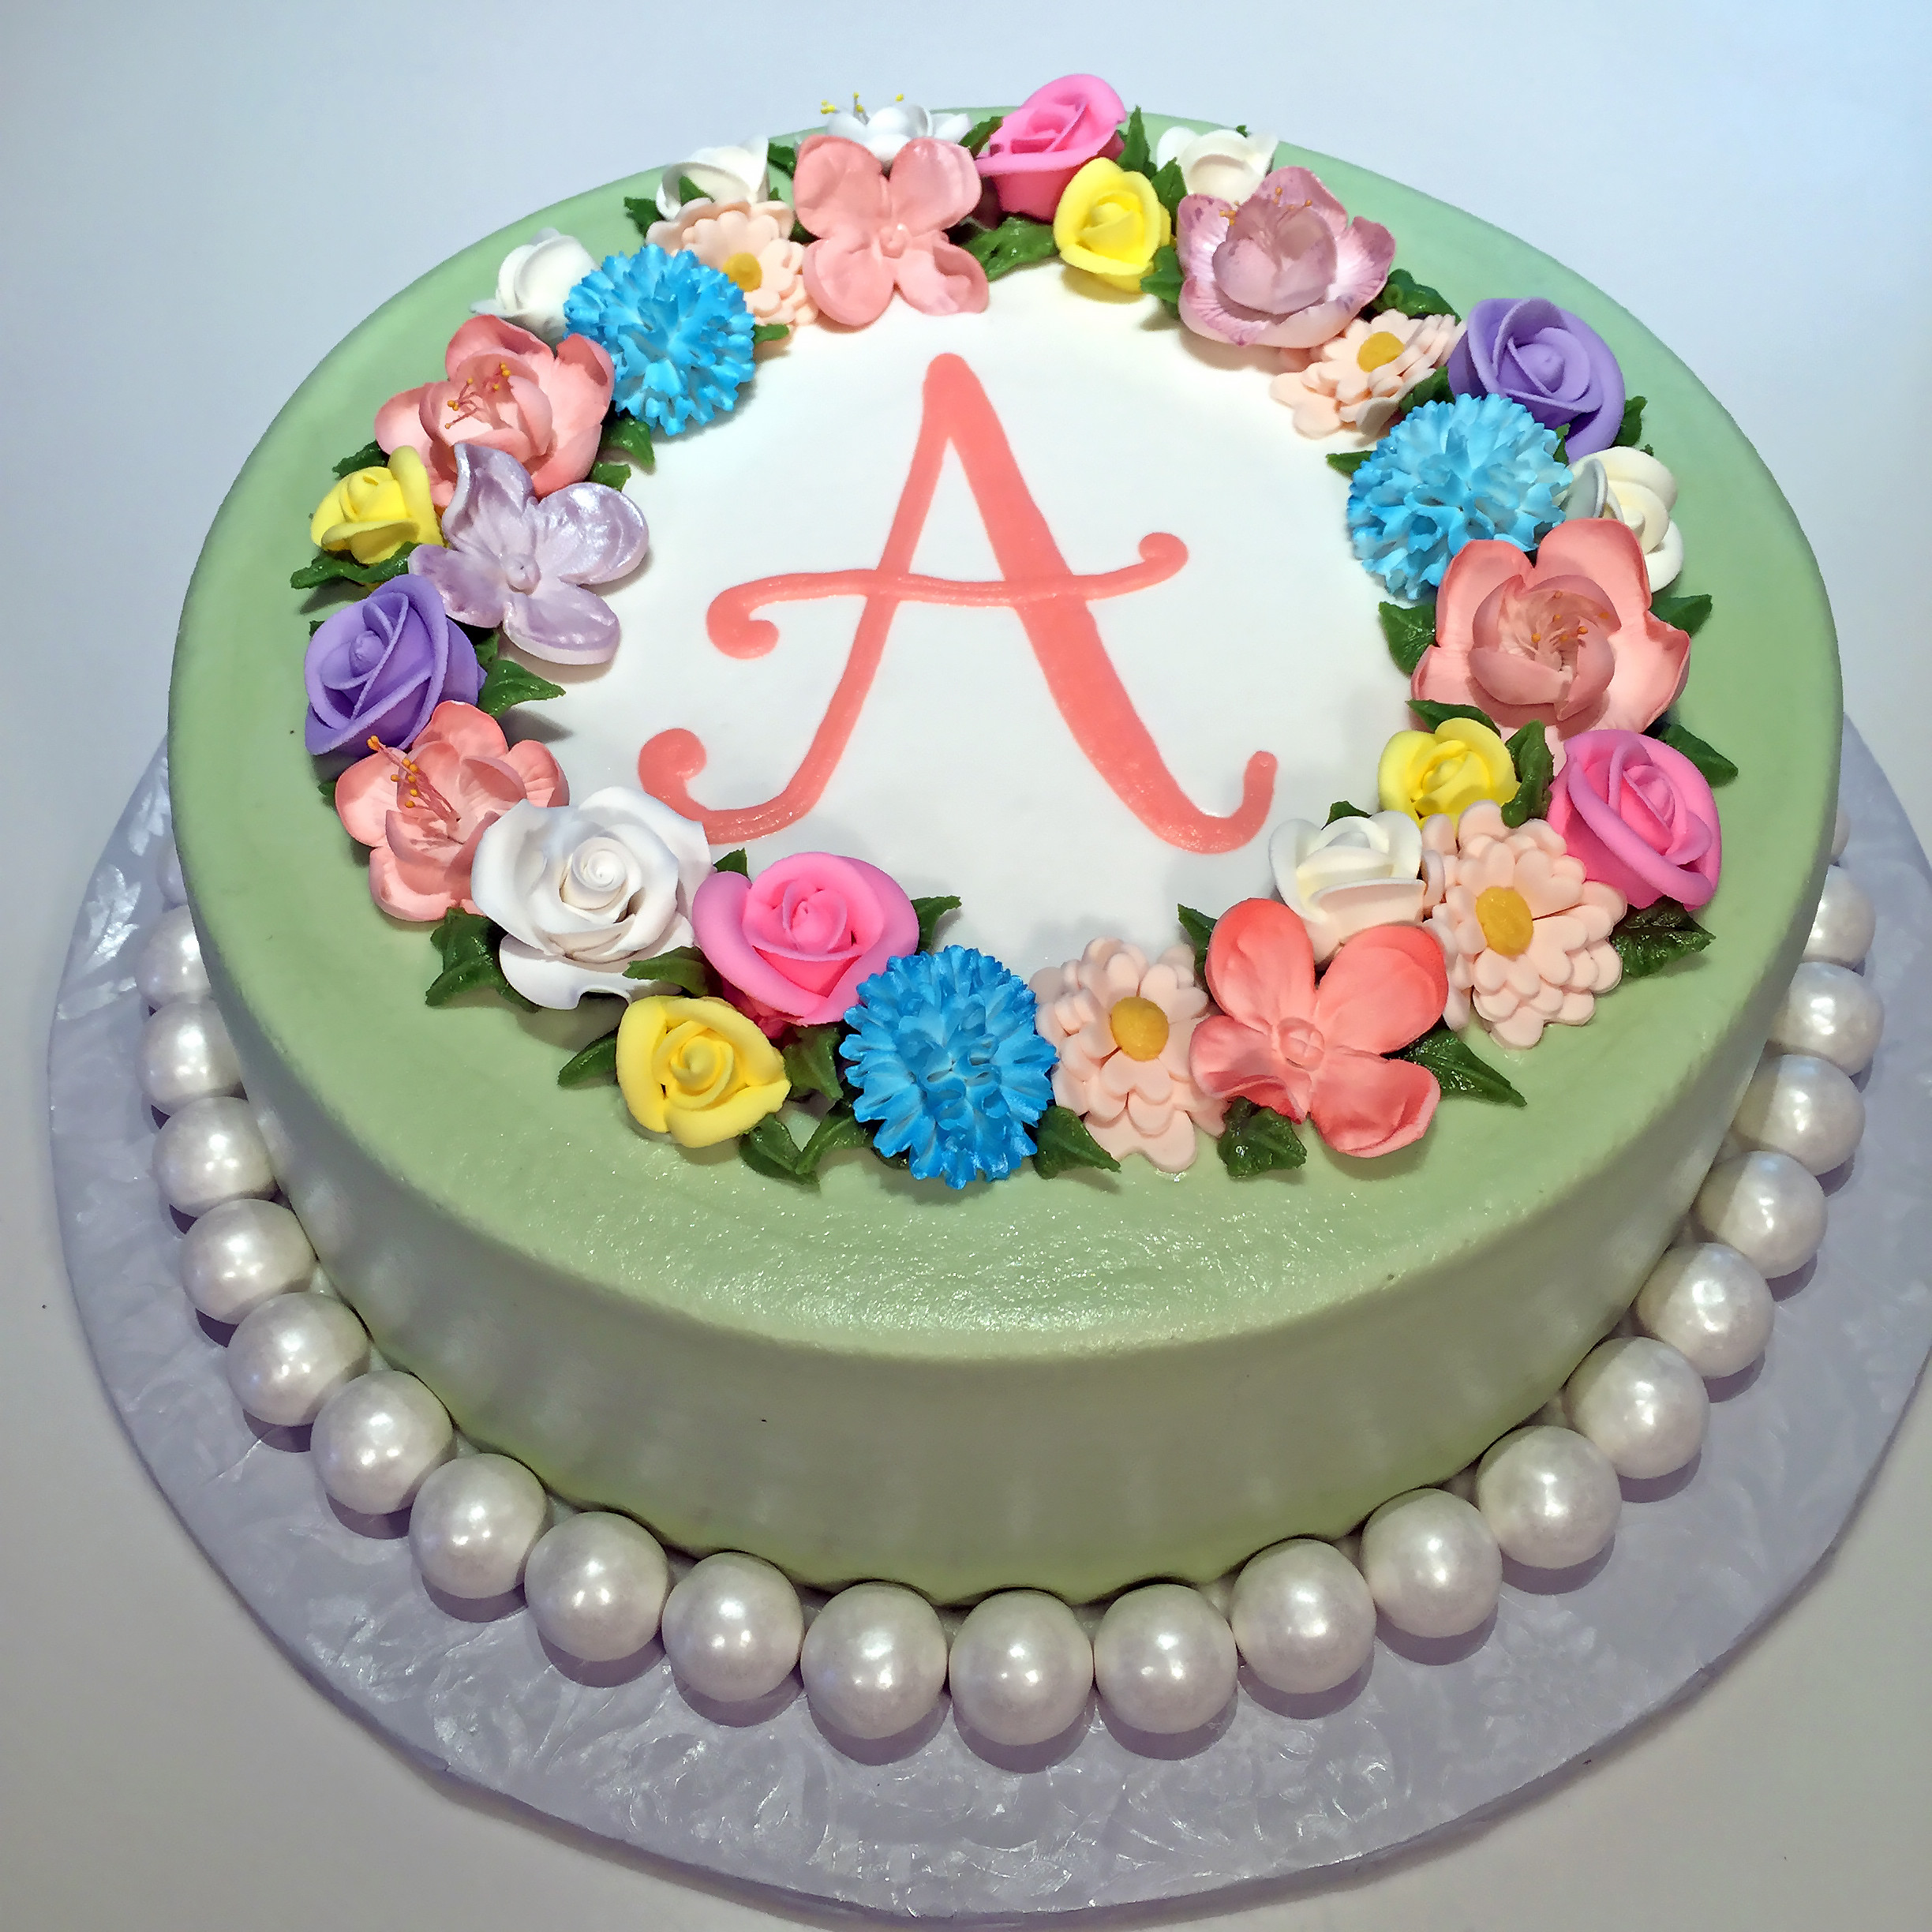 Birthday Cake Designs Adults  Birthday Cakes for Women